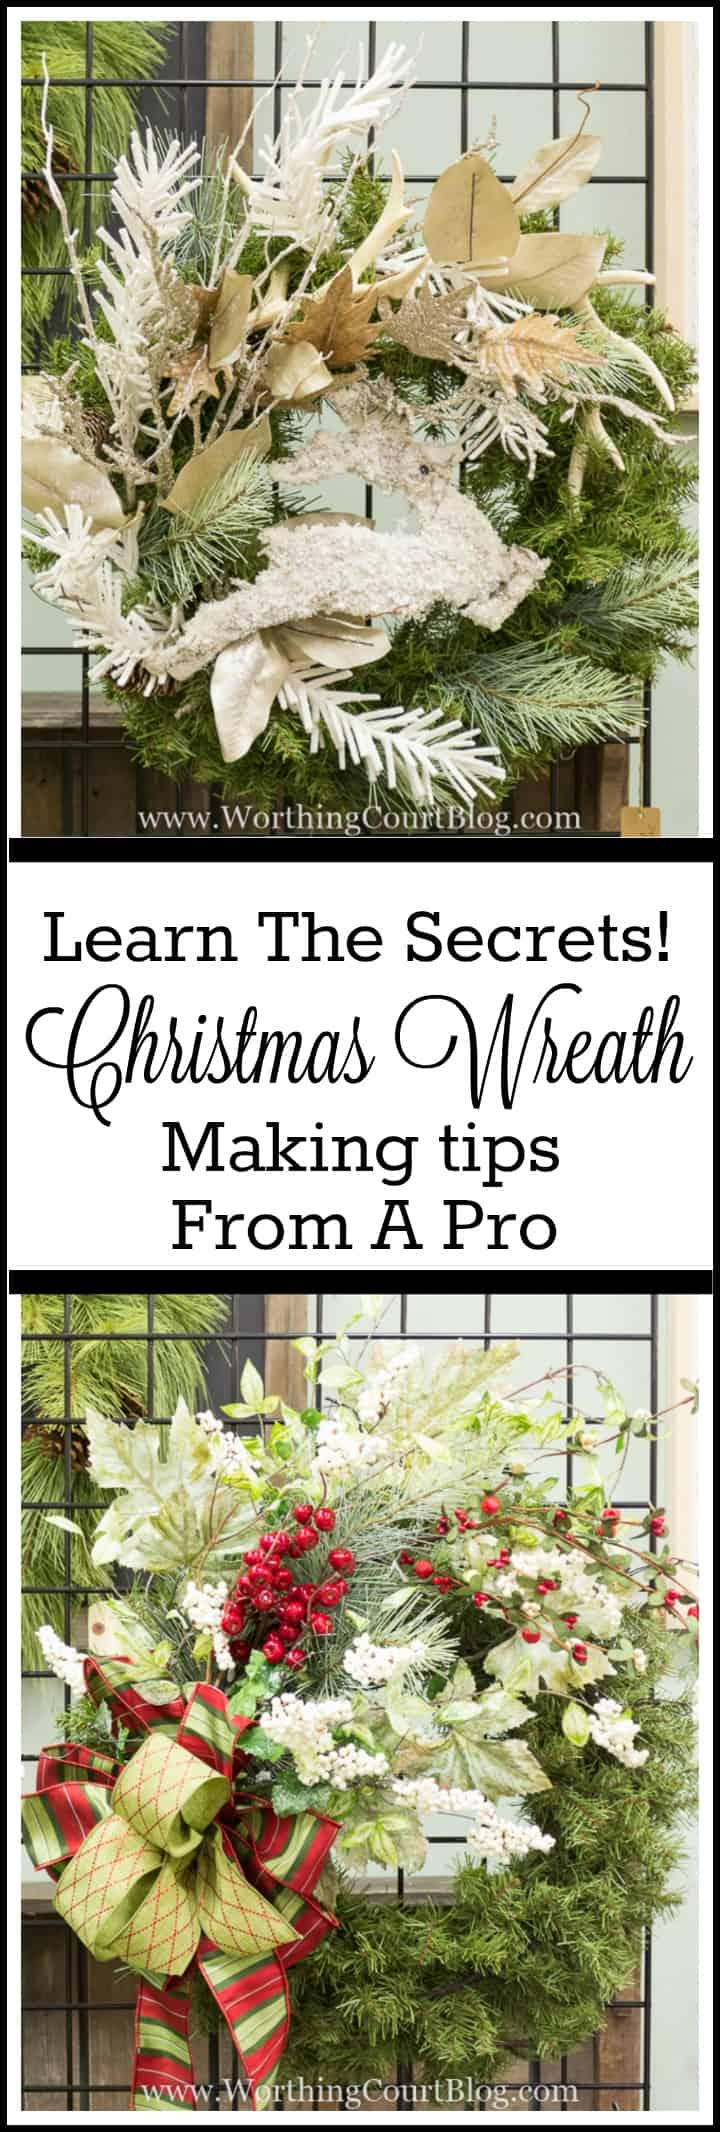 How To Decorate A Christmas Wreath - Directions From A Pro.